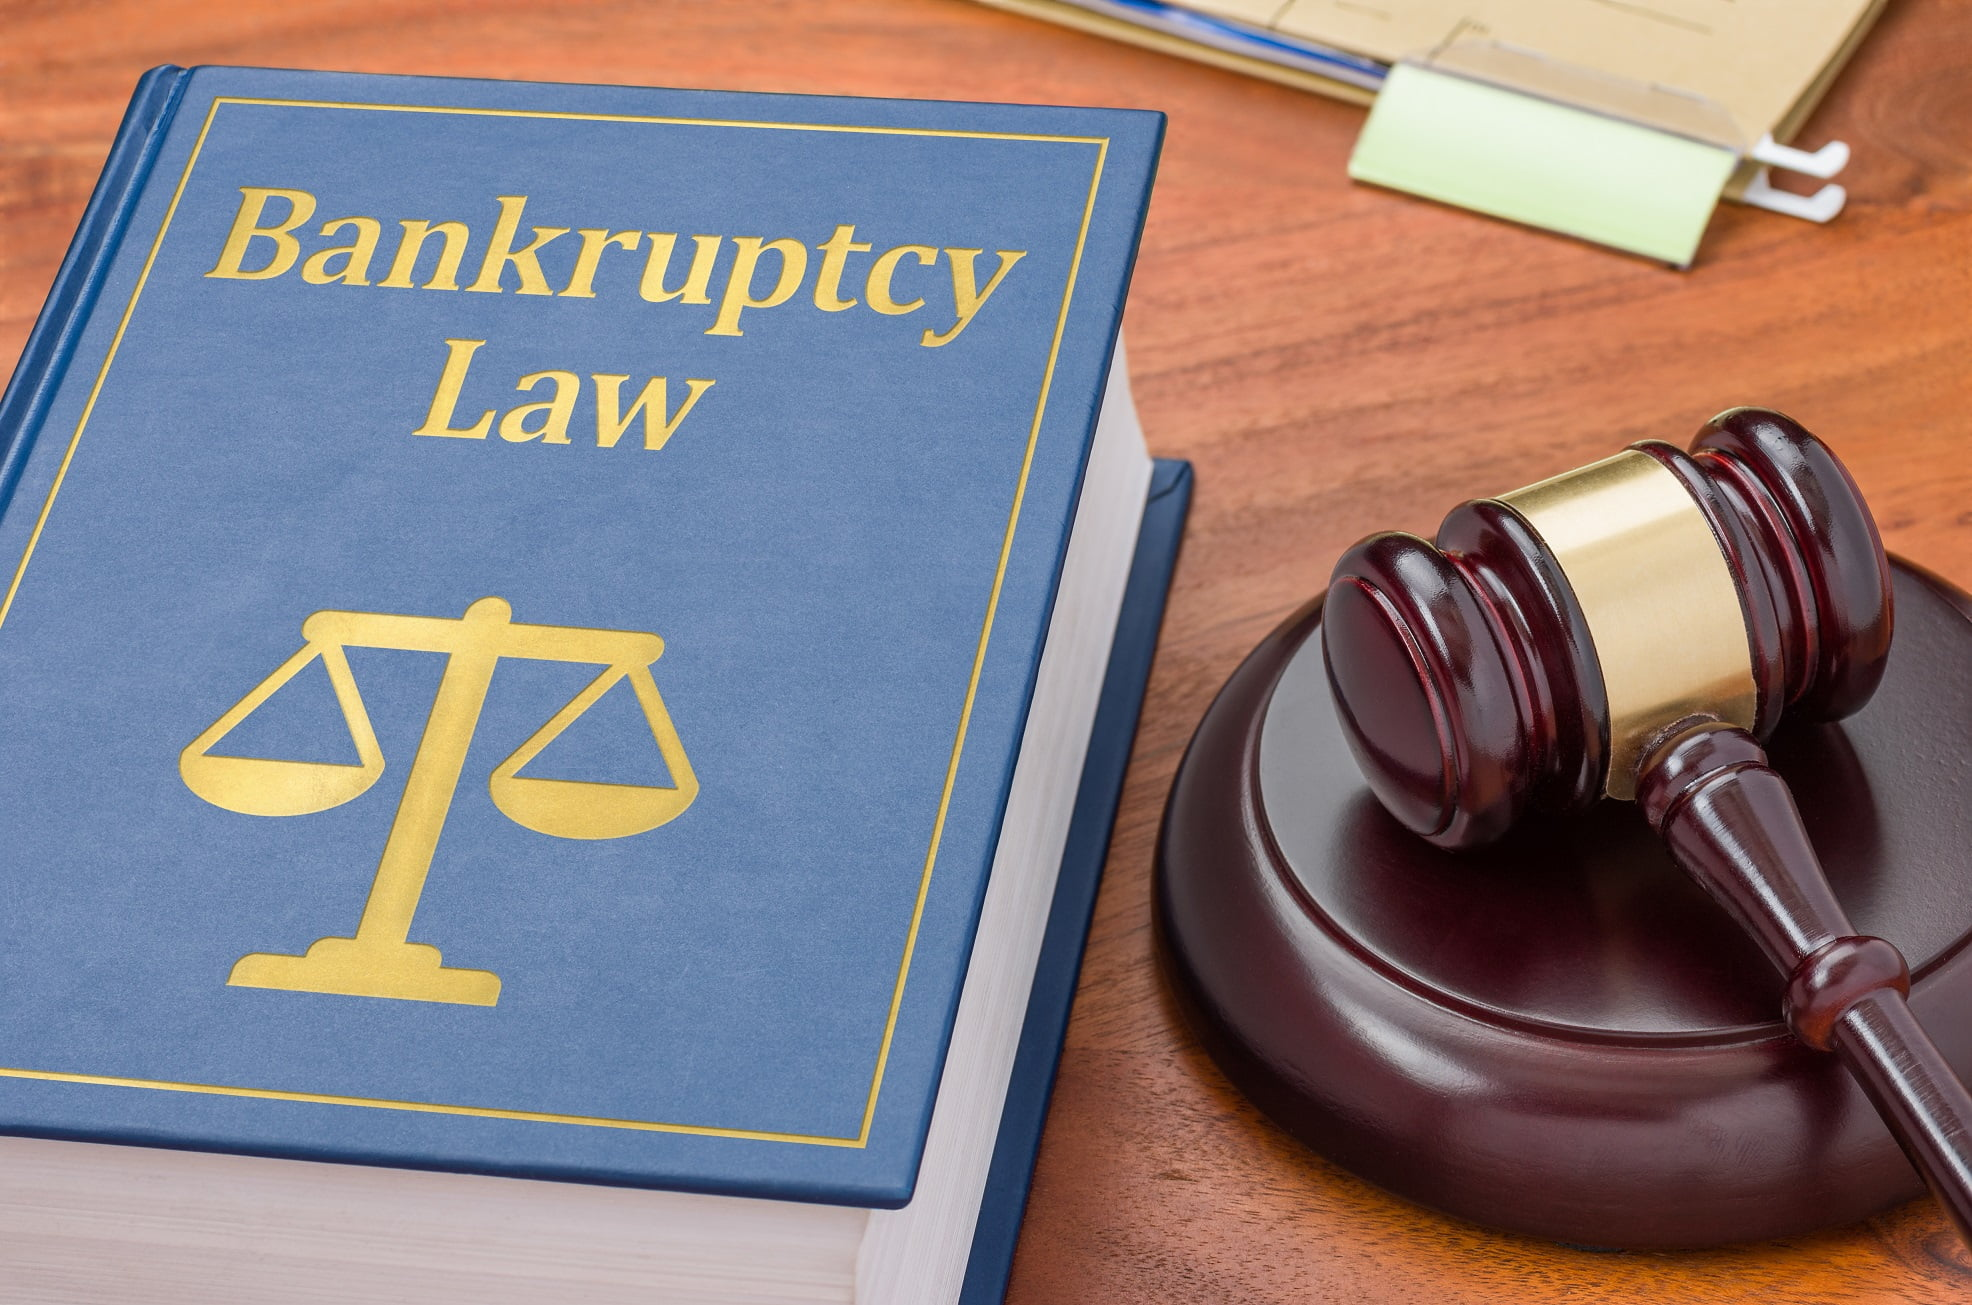 bankruptcy law book and gavel